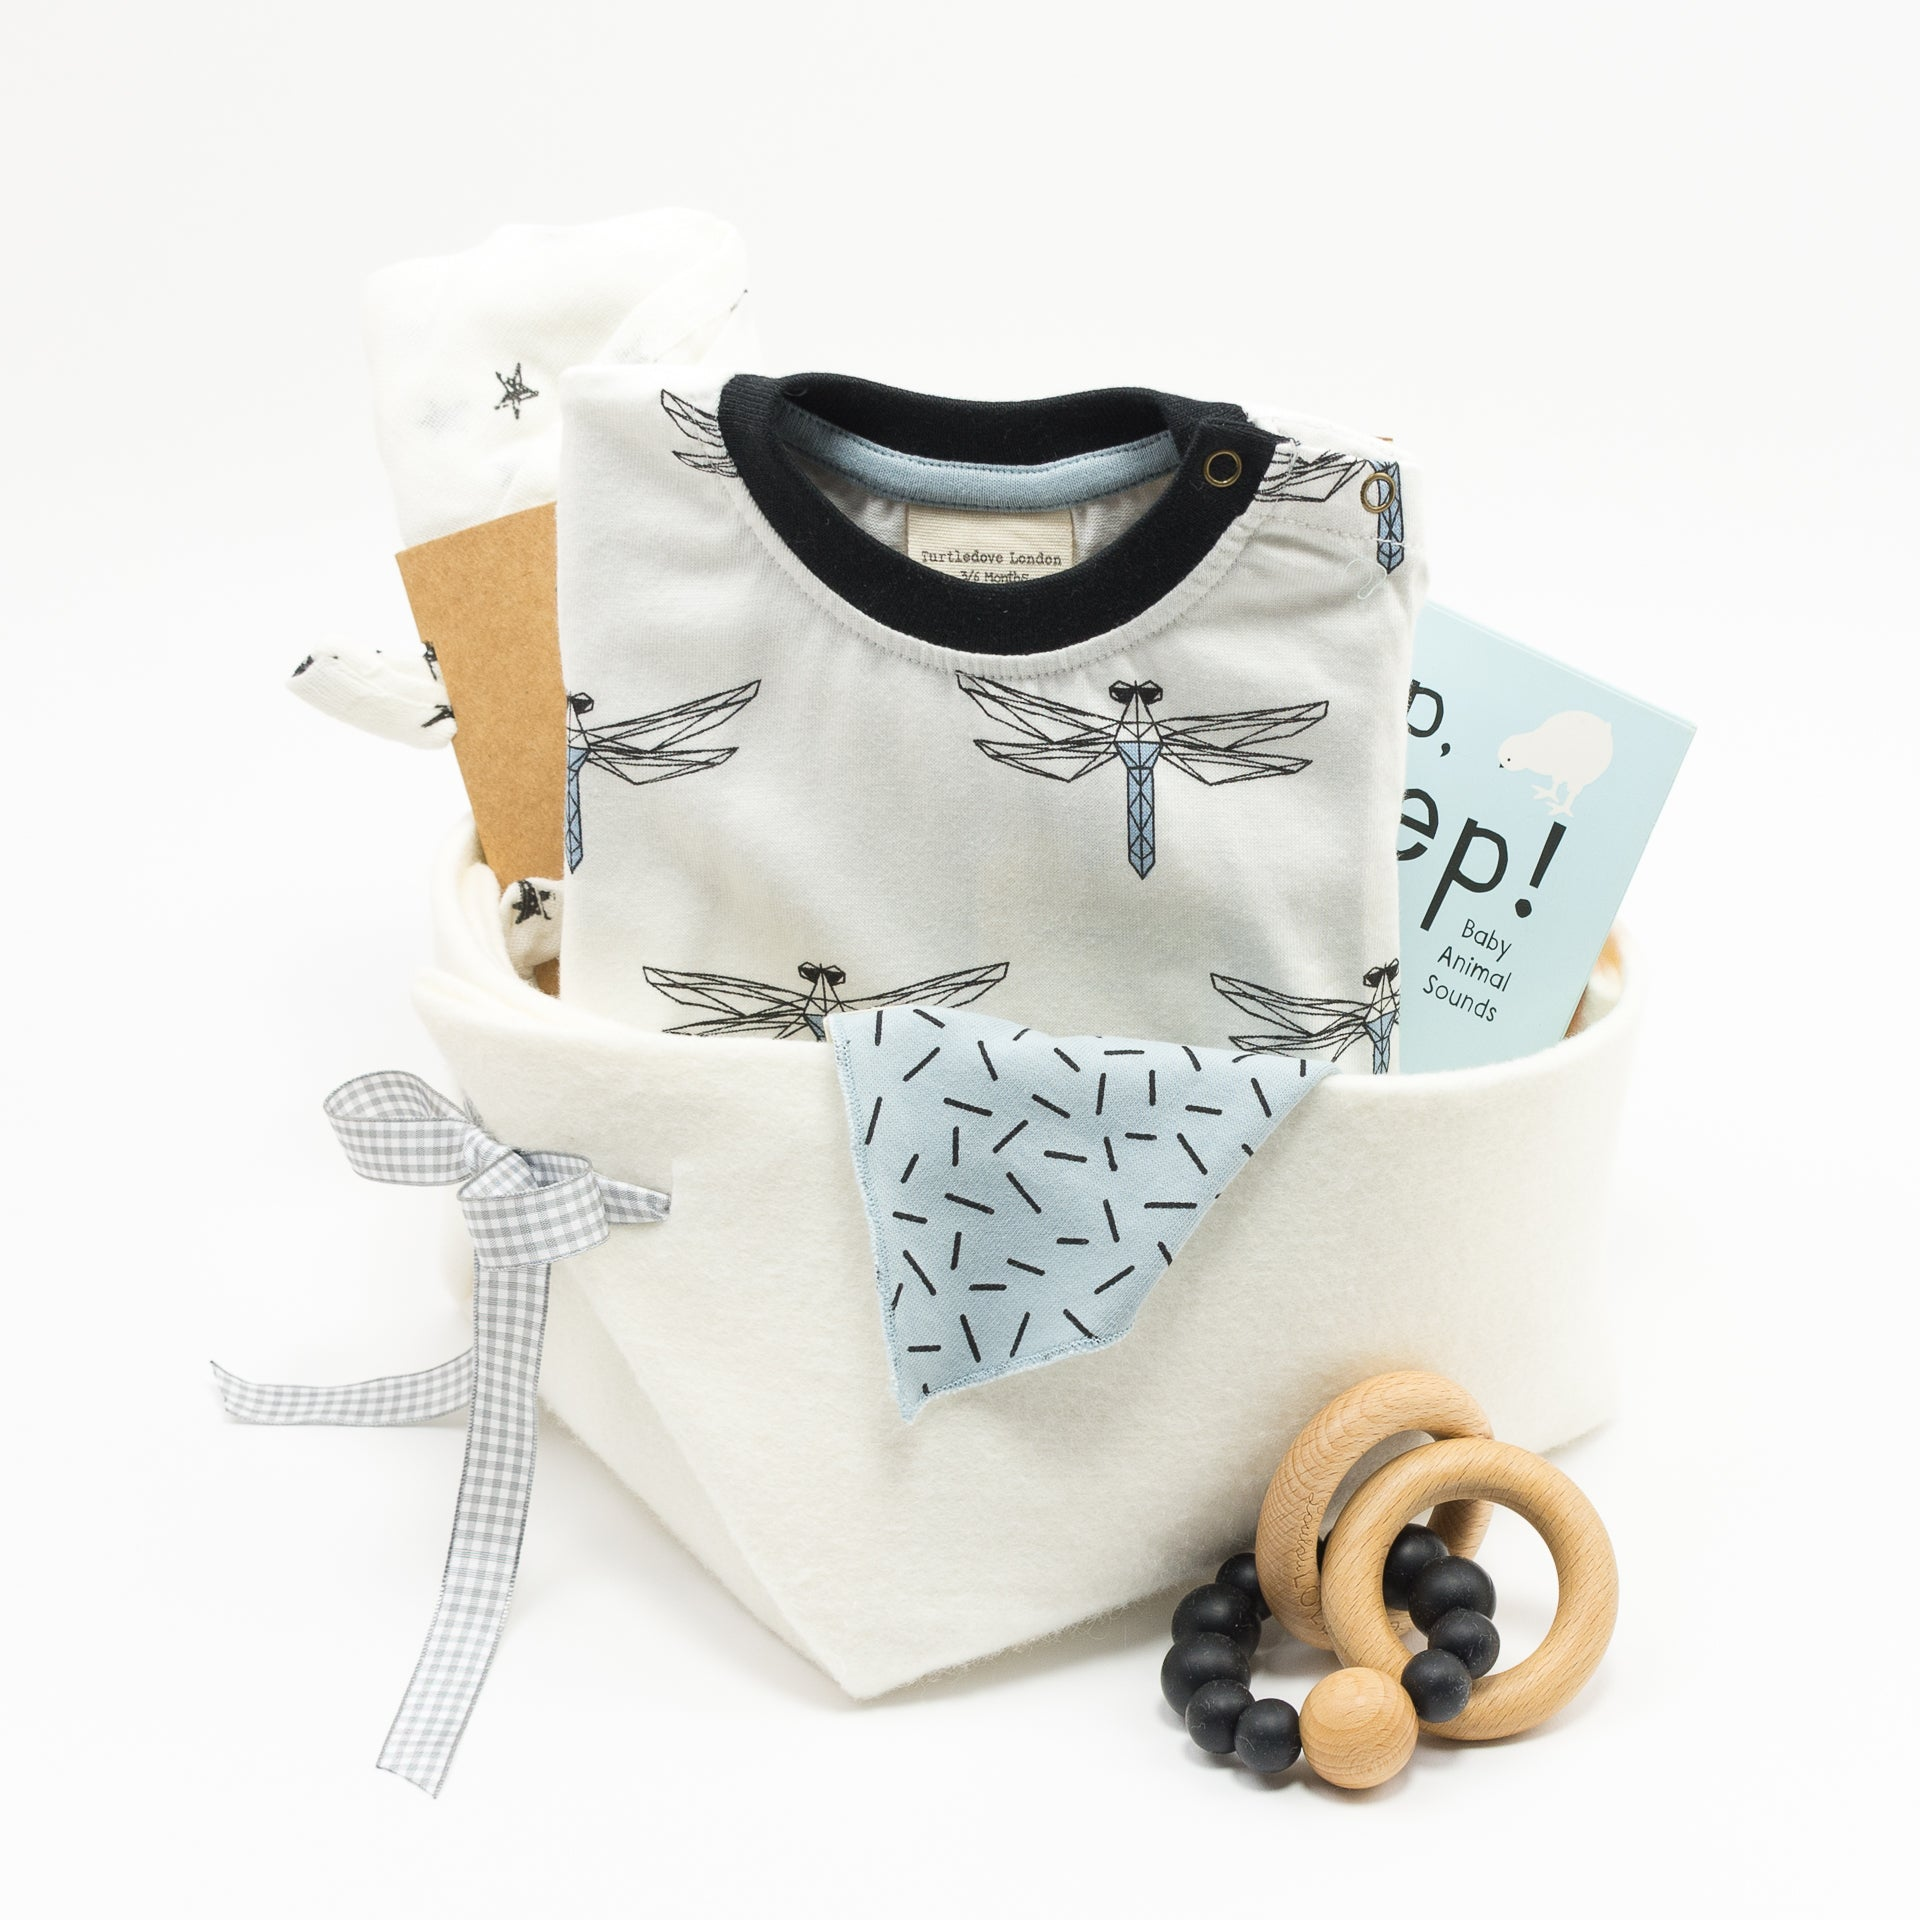 Baby Gift at Bonjour Baby Baskets, perfect Corporate Baby Gift